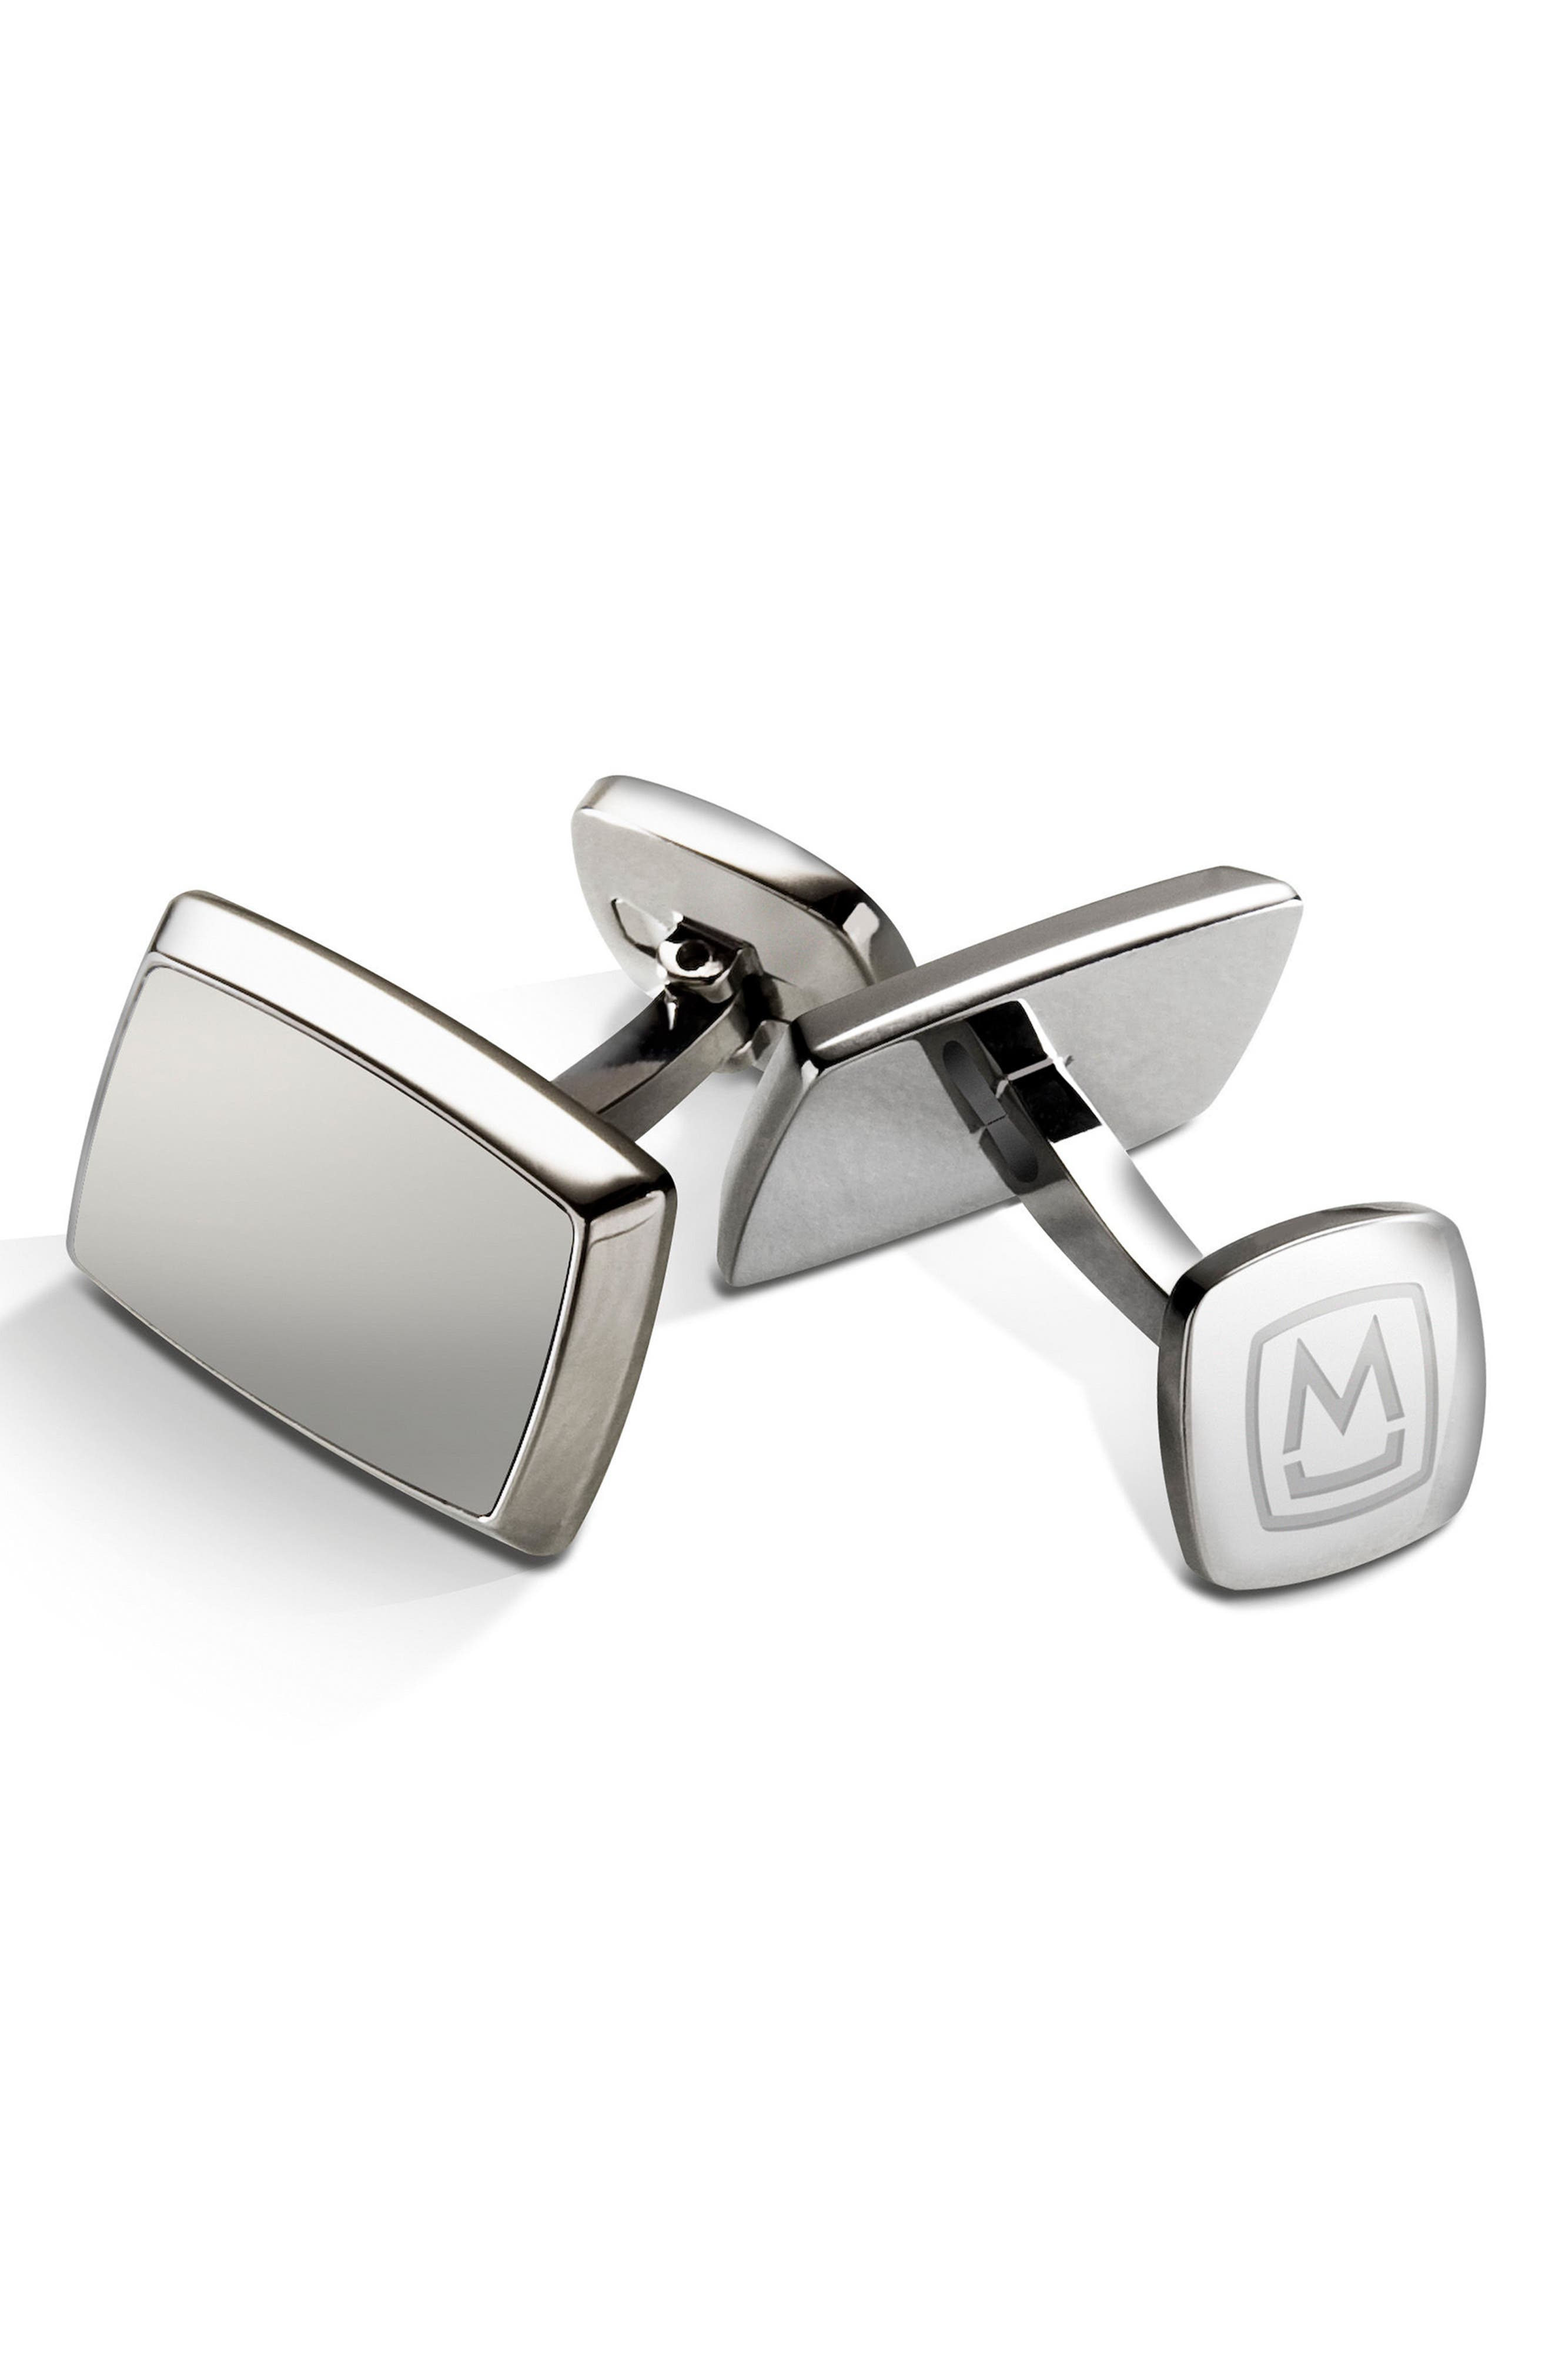 M-Clip Stainless Steel Cuff Links,                             Main thumbnail 1, color,                             Silver